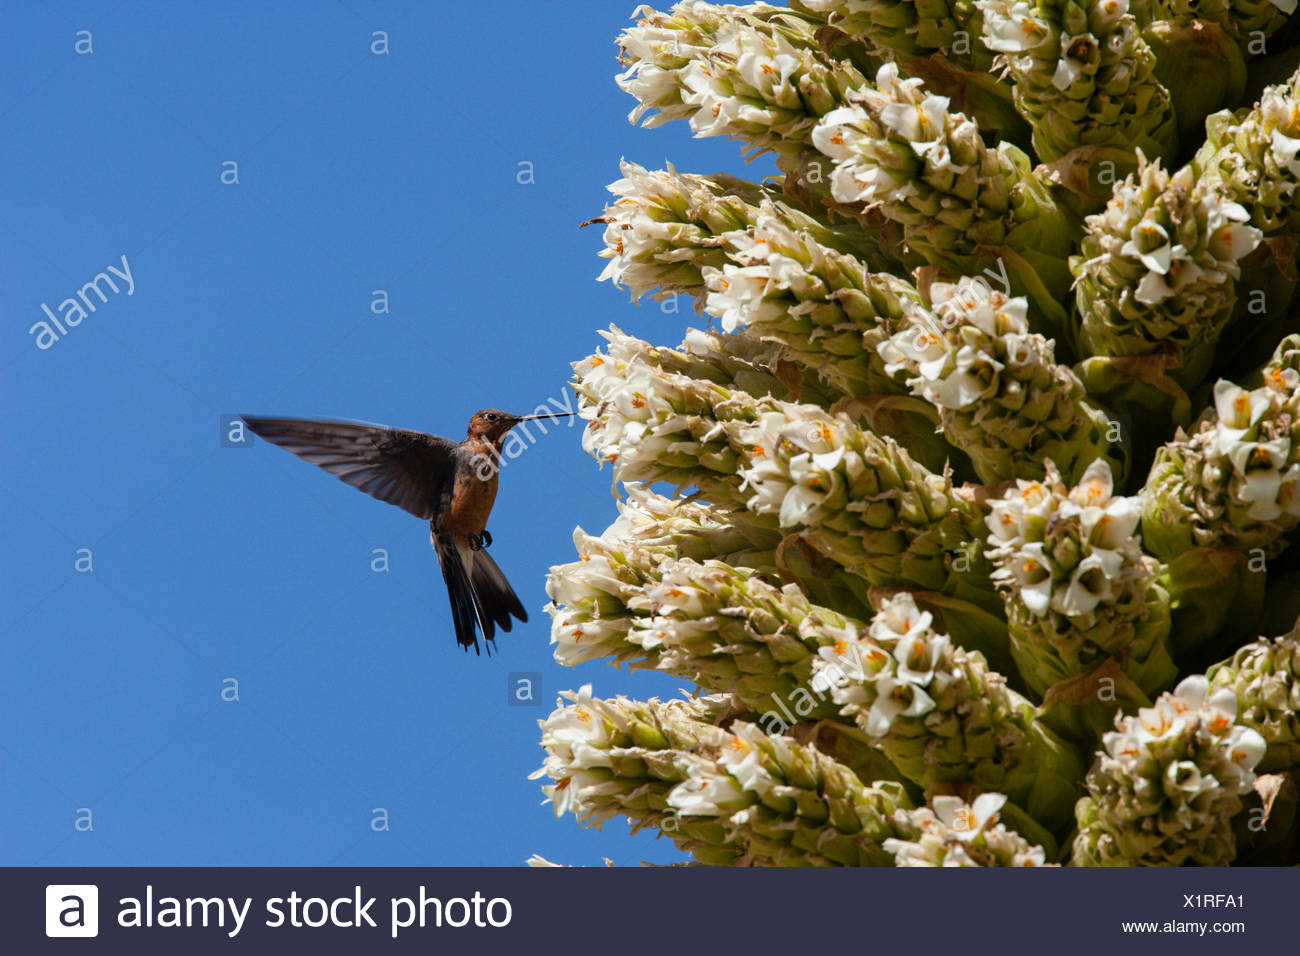 Giant humming bird (Patagona gigas) feeding from Queen of the Andes (Puya raymondii) flowers,  Cordillera Blanca Massif, Andes, Peru, November. Stock Photo